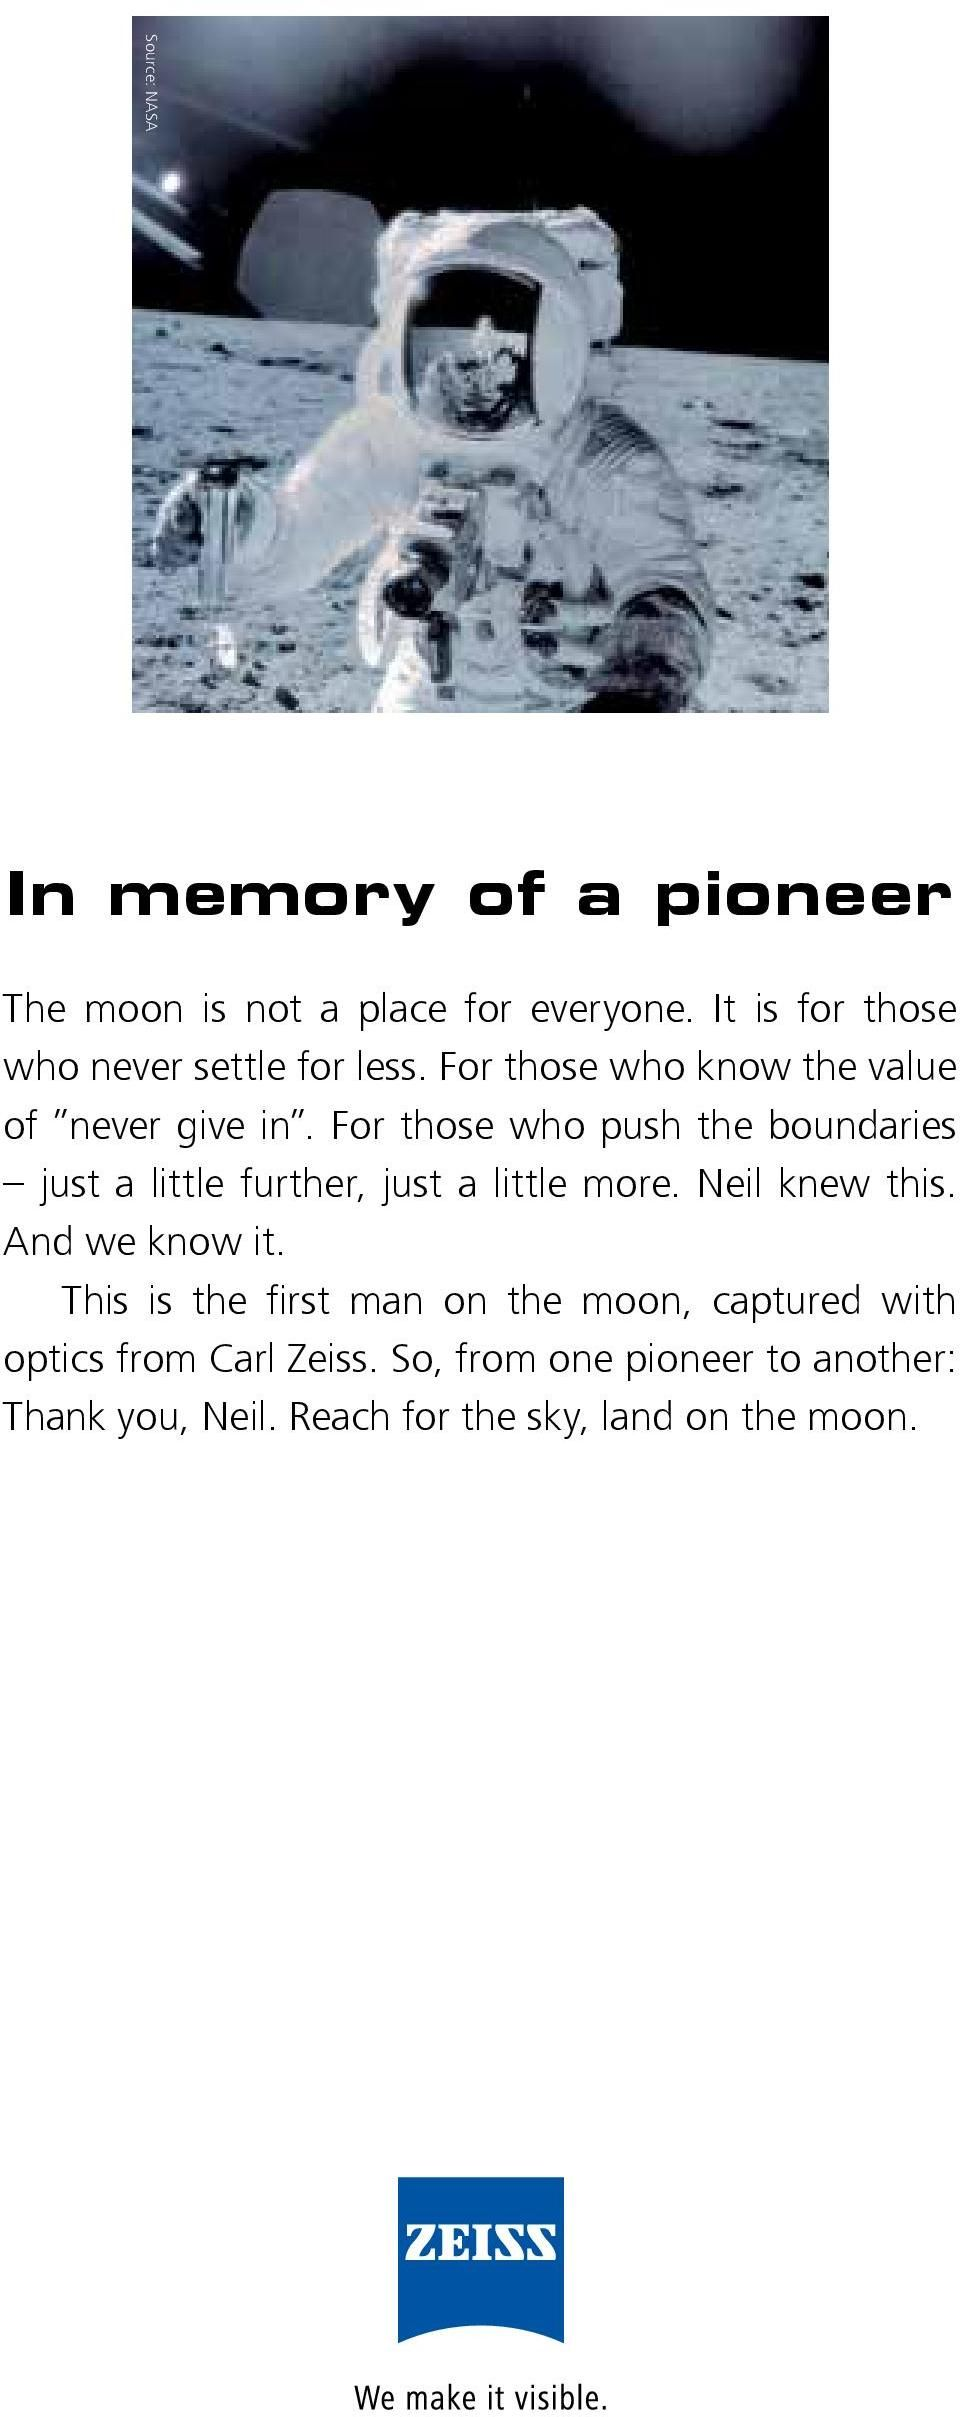 For those who push the boundaries just a little further, just a little more. Neil knew this. And we know it.